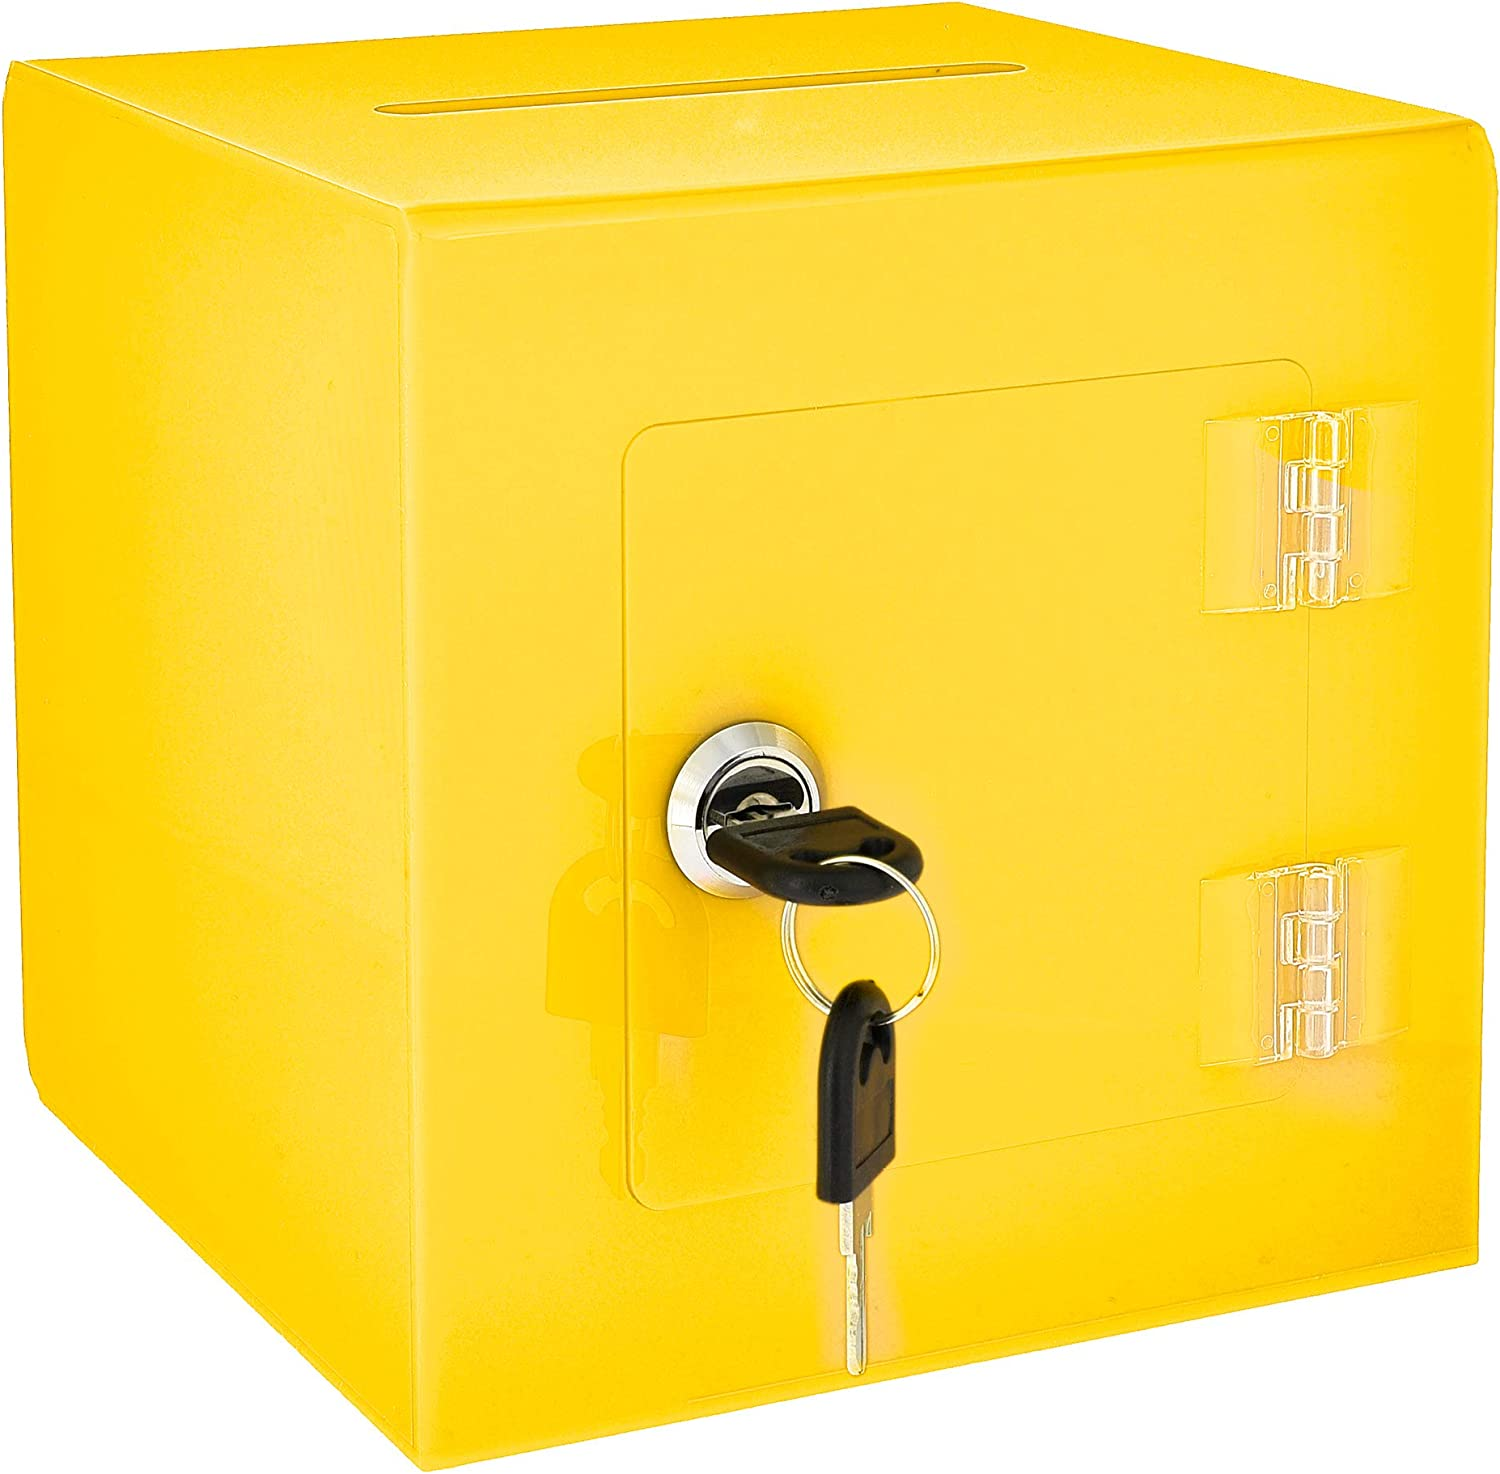 "AdirOffice 6"" x 6'' Acrylic Ballot Box Donation Box with Easy Open Rear Door - Durable Acrylic Box with Lock - Ideal for Voting, Charity & Suggestion Collection - Yellow"